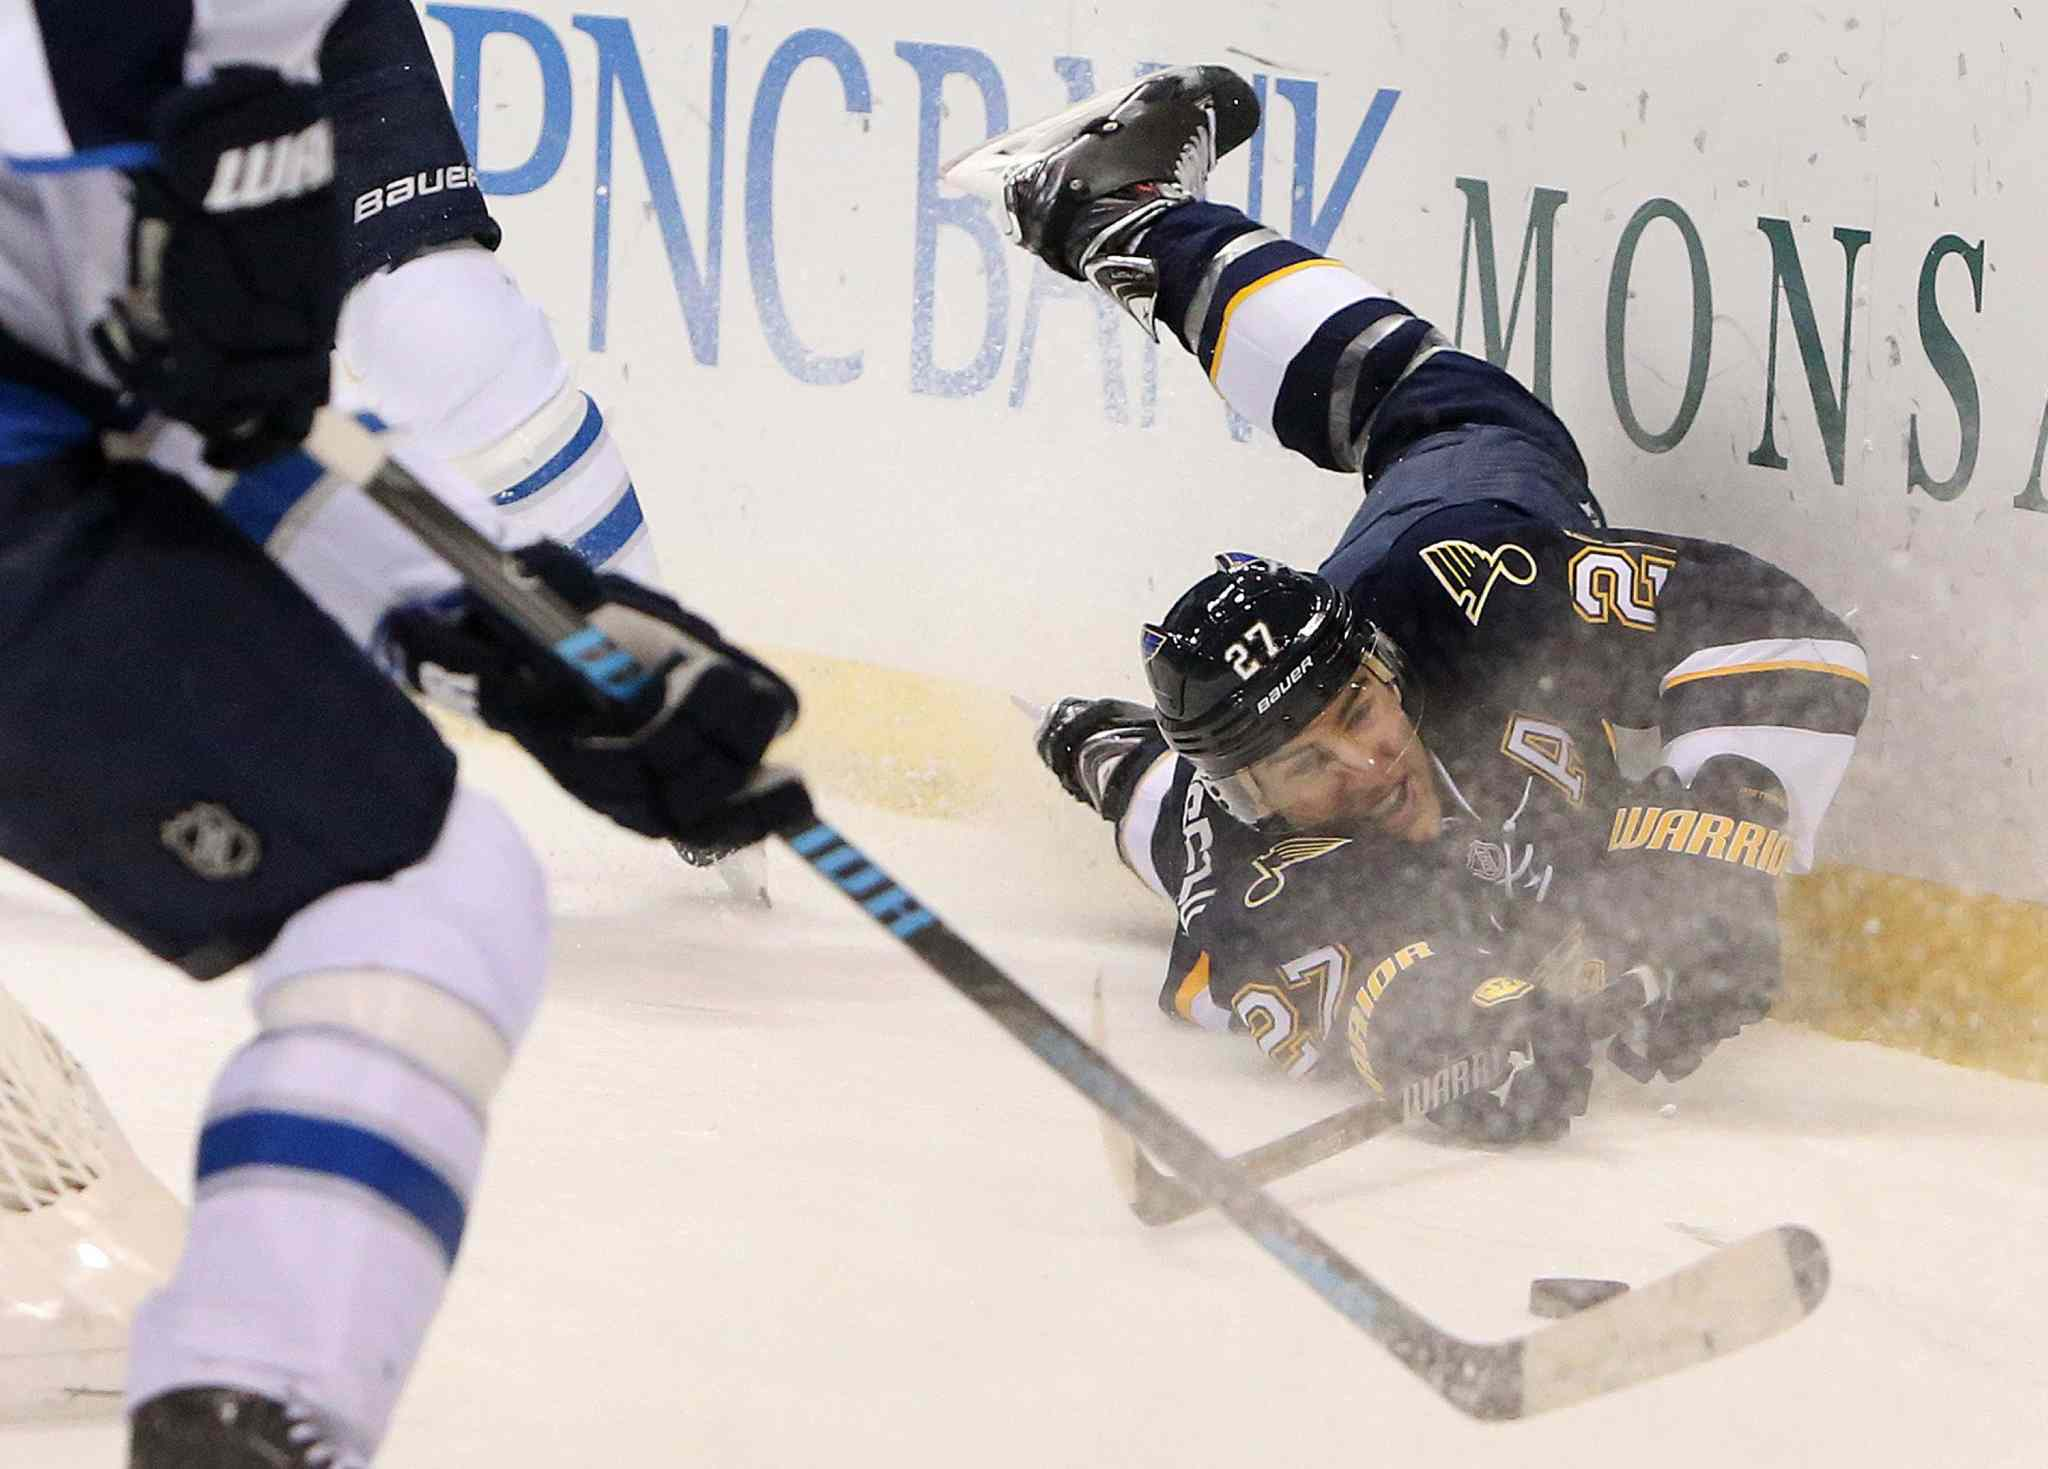 Alex Pietrangelo of the St. Louis Blues stretches for the puck as he slides into the boards during Saturday's game against the Winnipeg Jets.